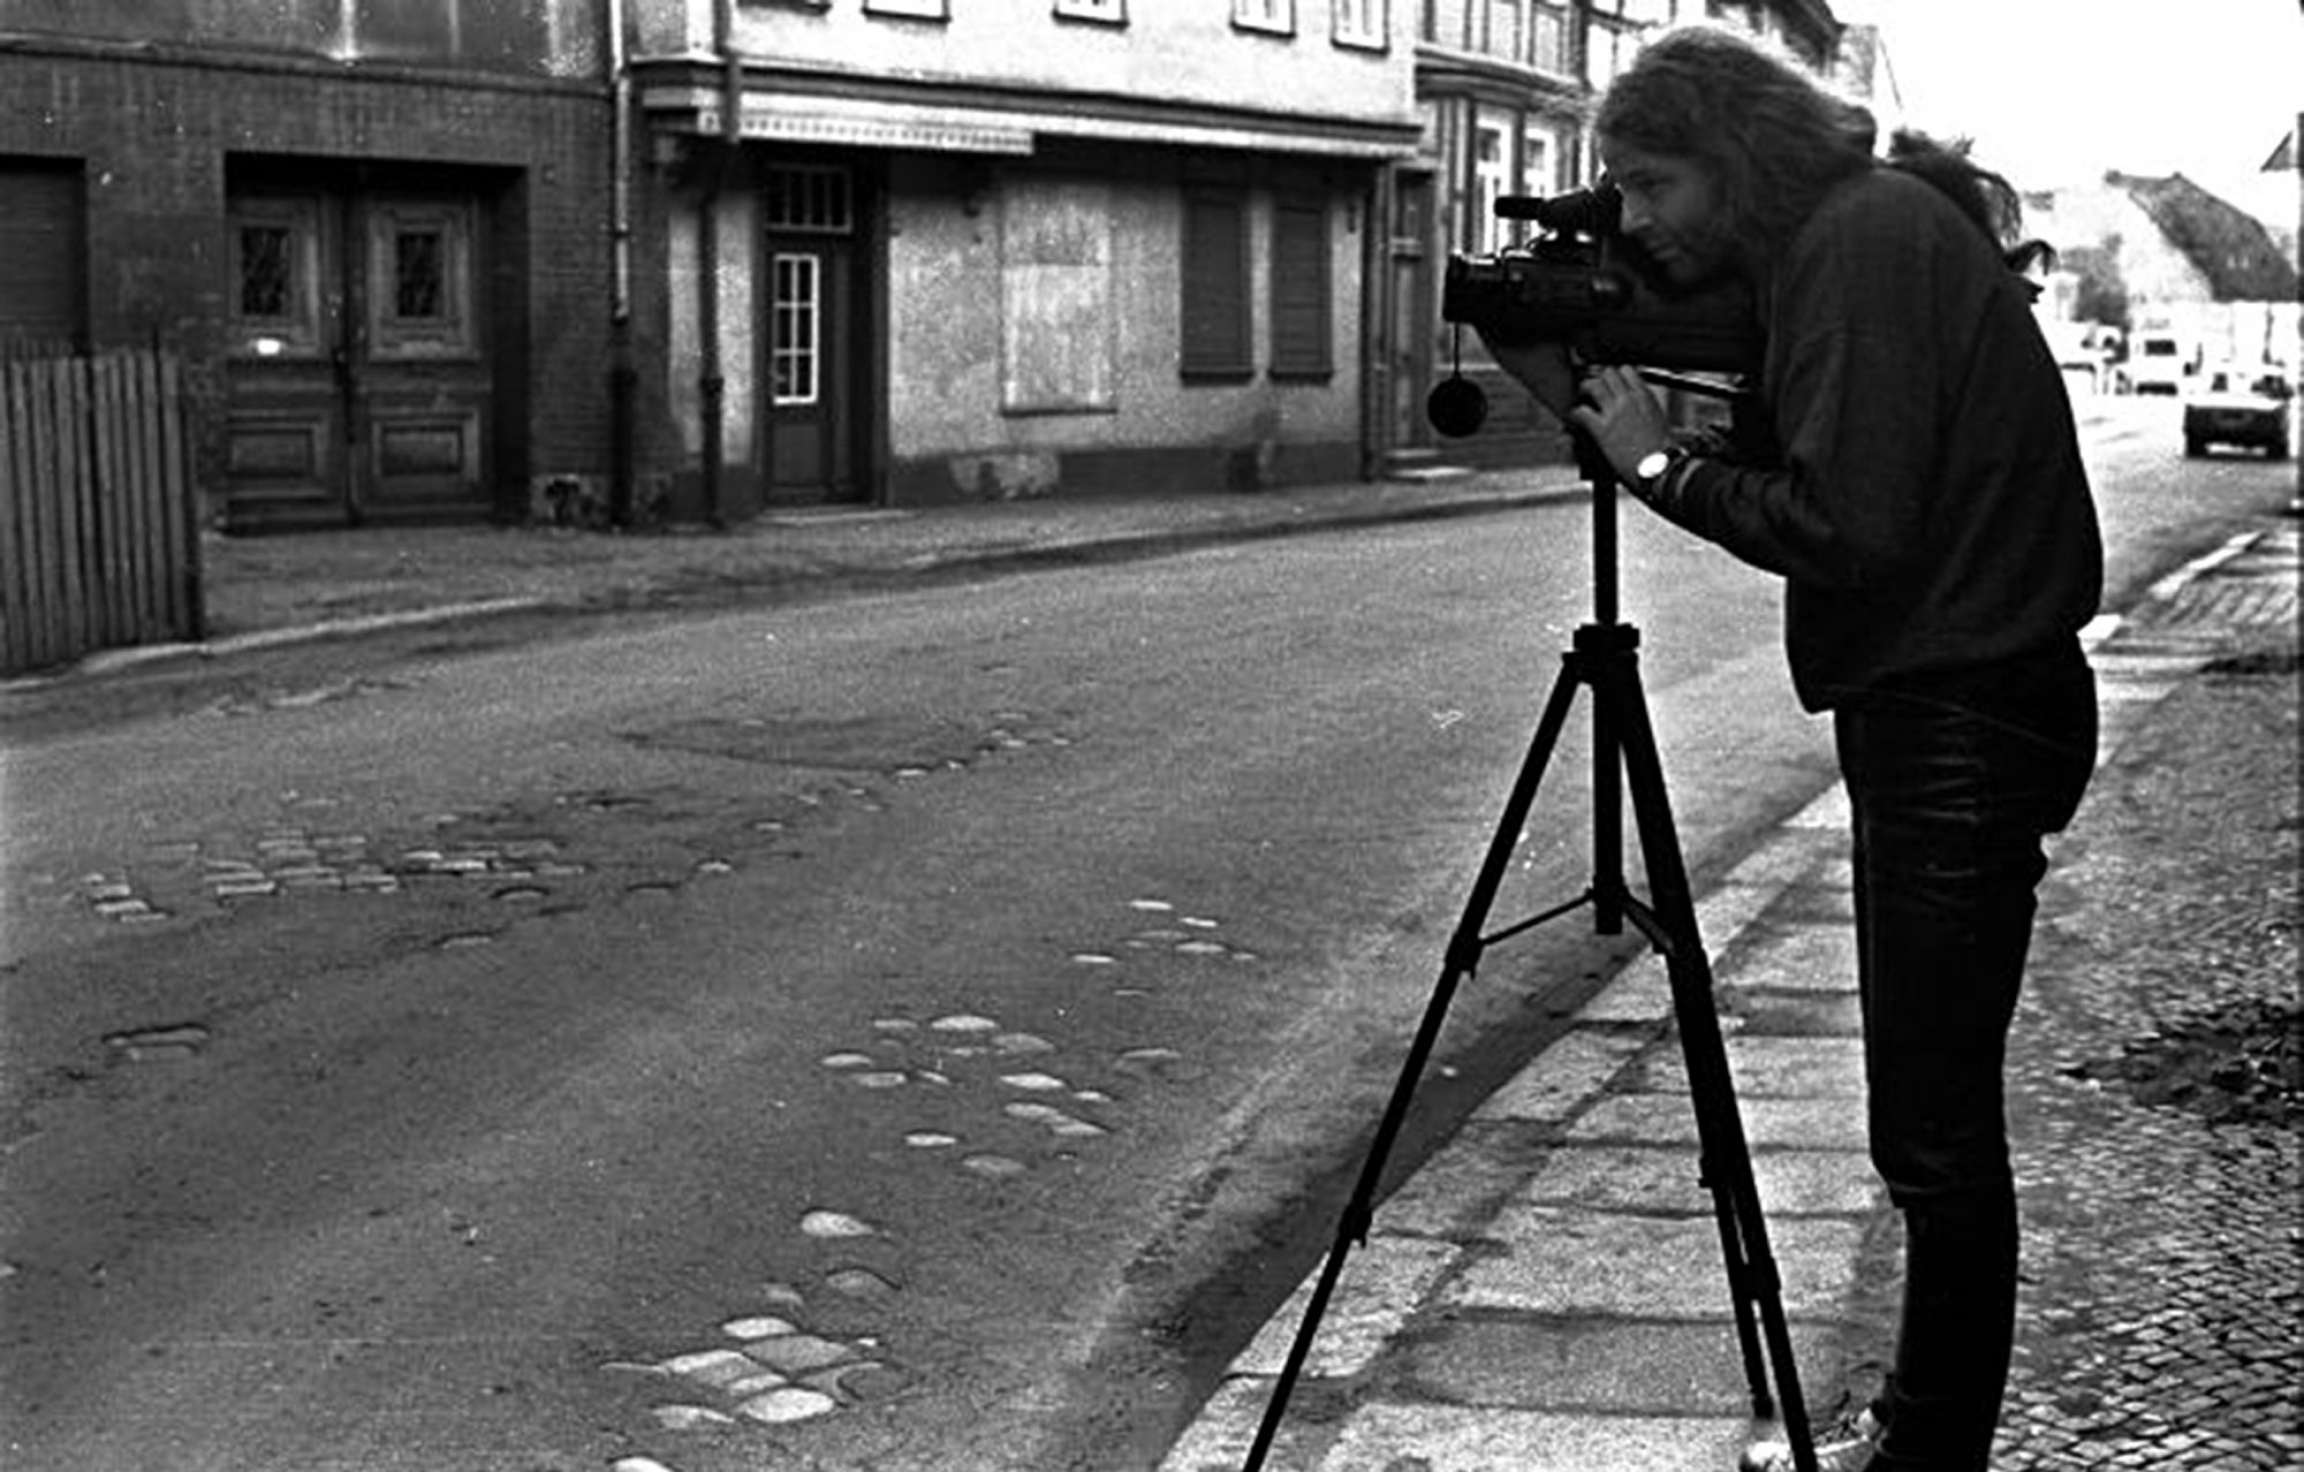 Siegbart Schefke is shown standing behind a camera on a tripod.